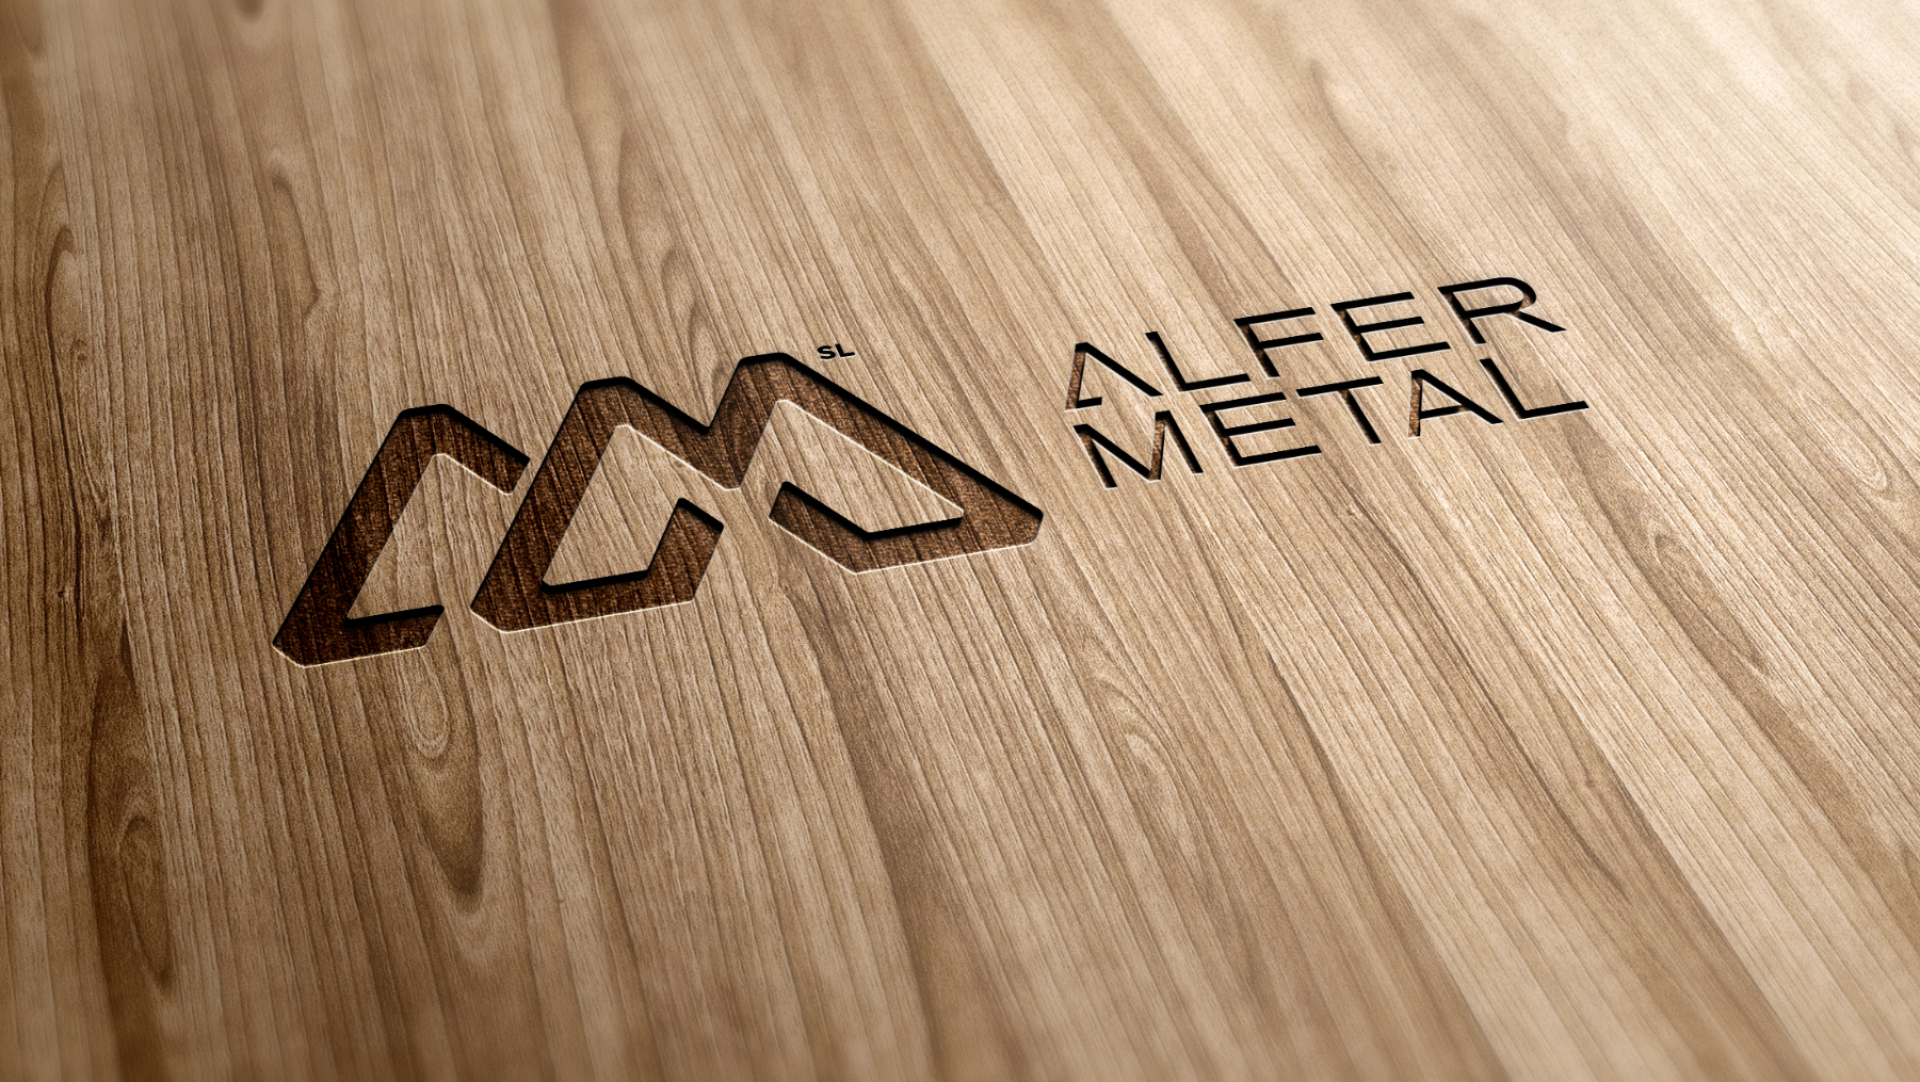 Alfer Metal - Professional services